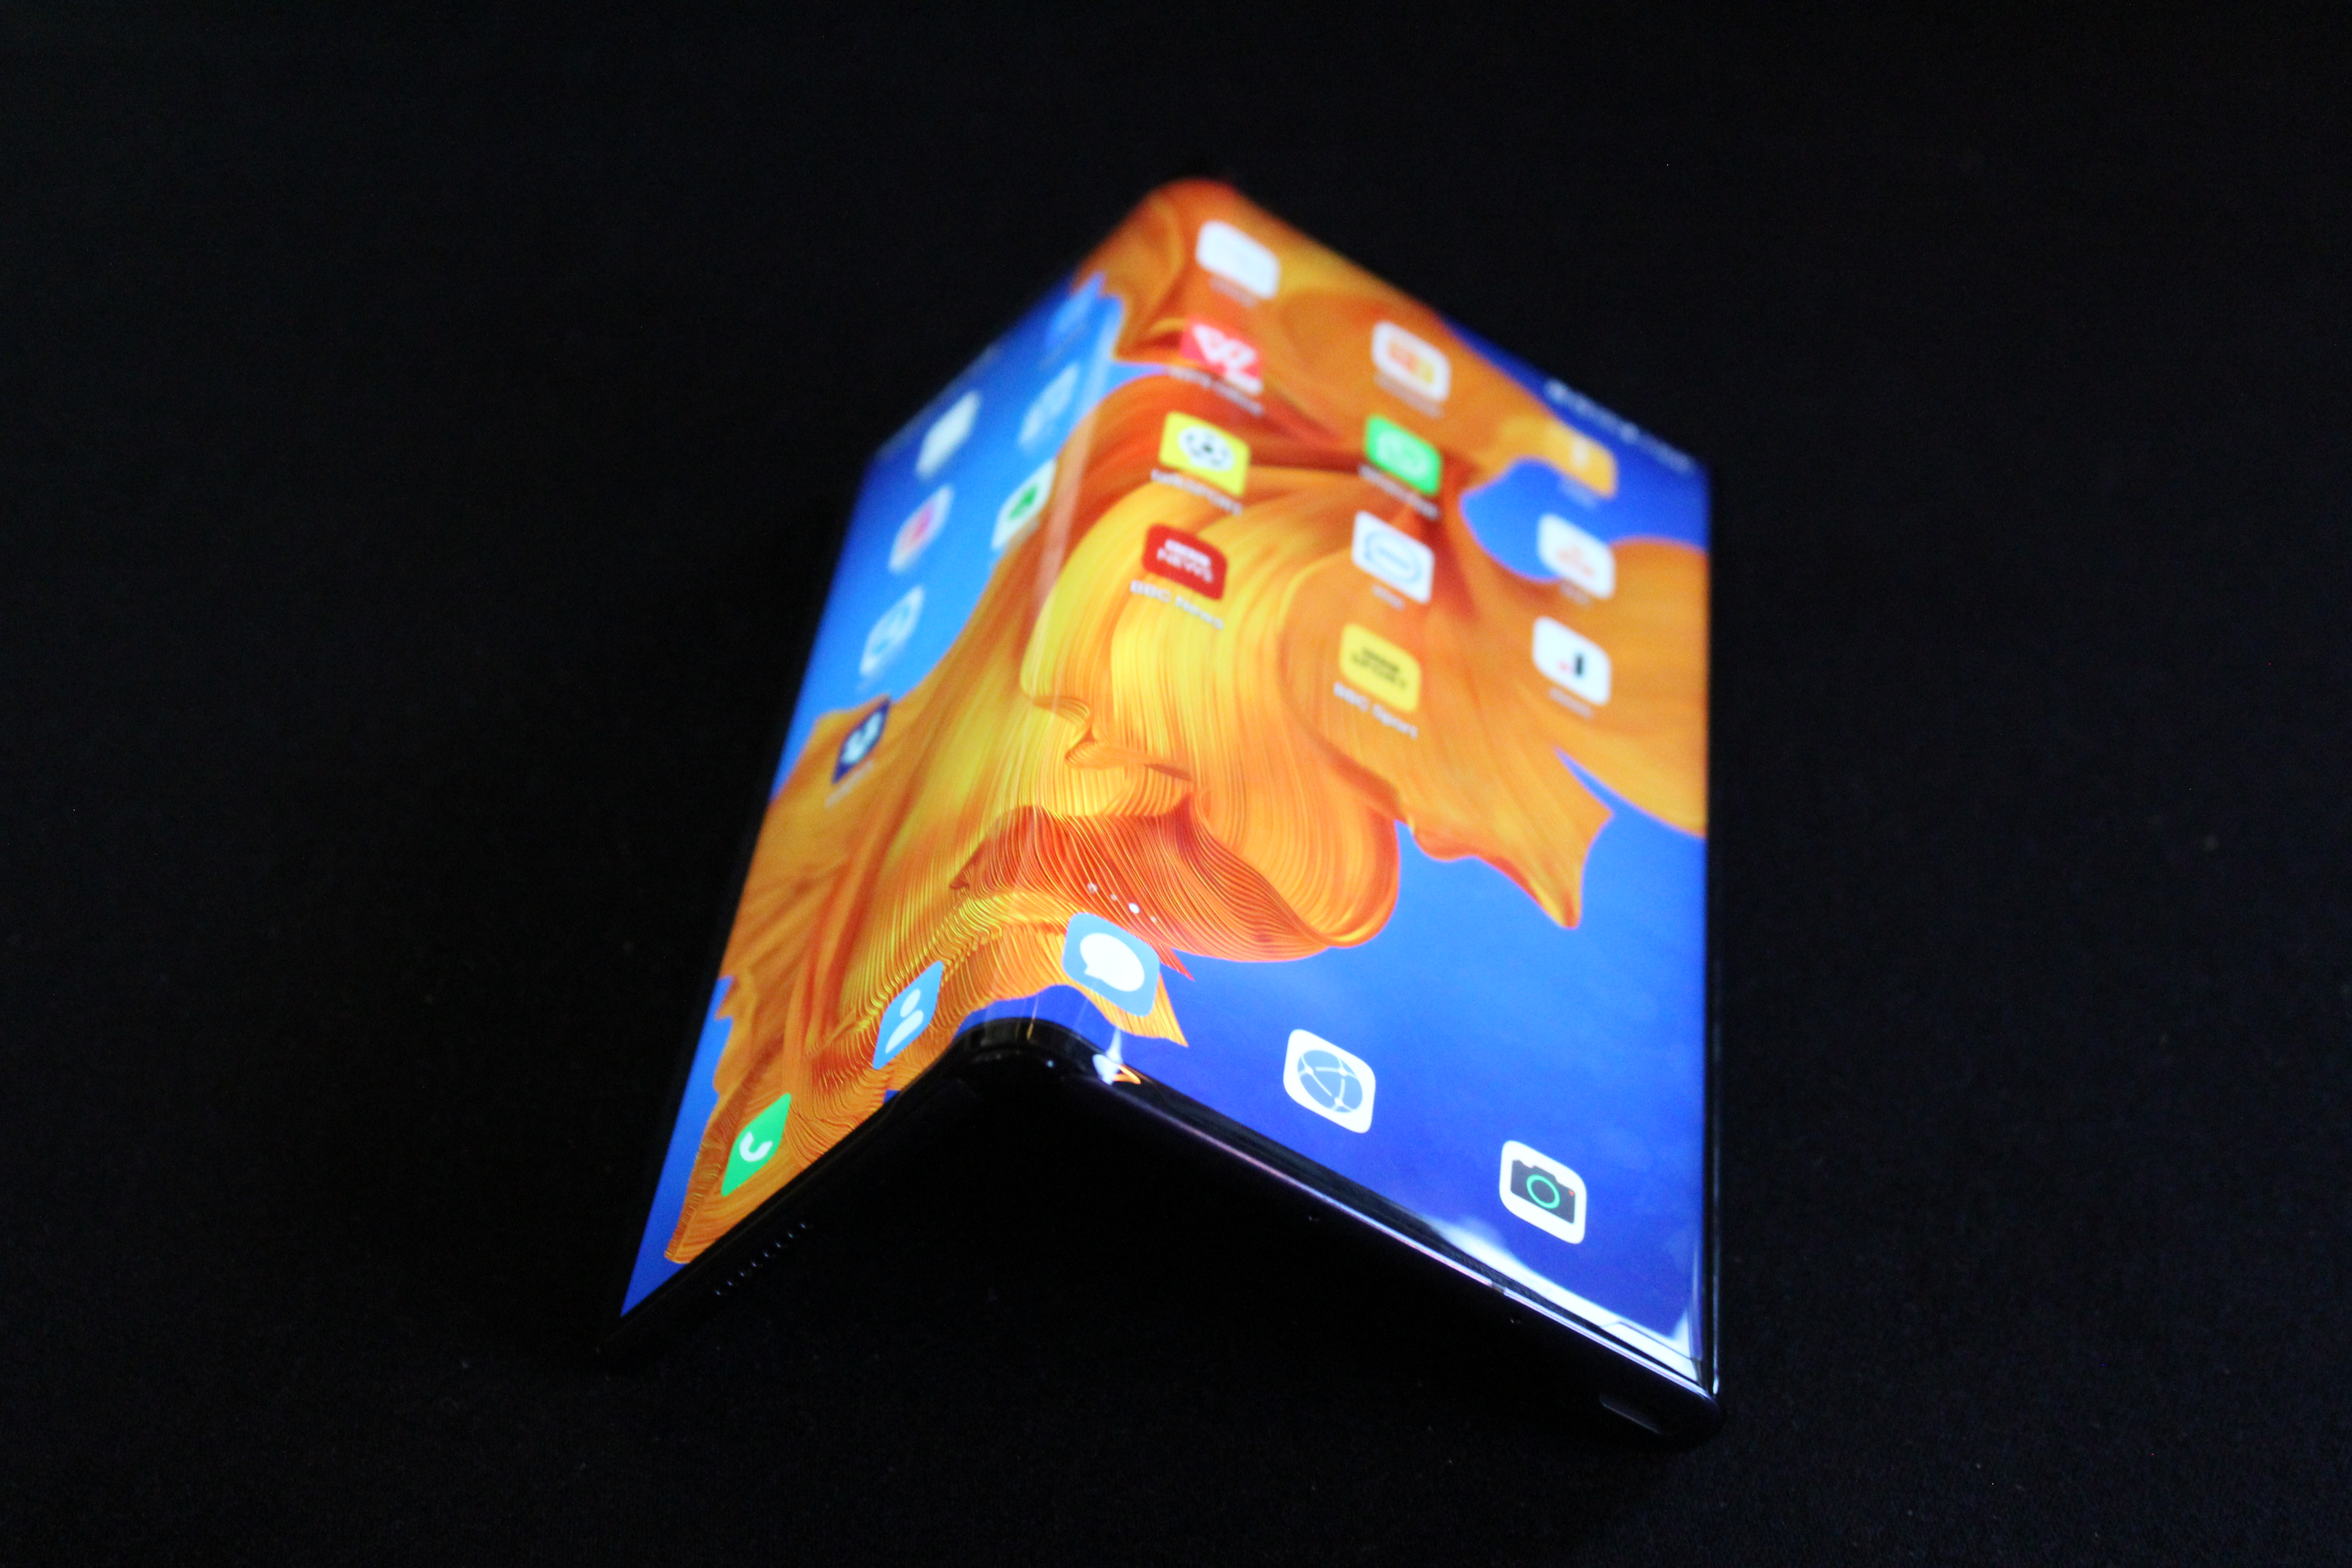 The new Huawei Mate Xs foldable smartphone